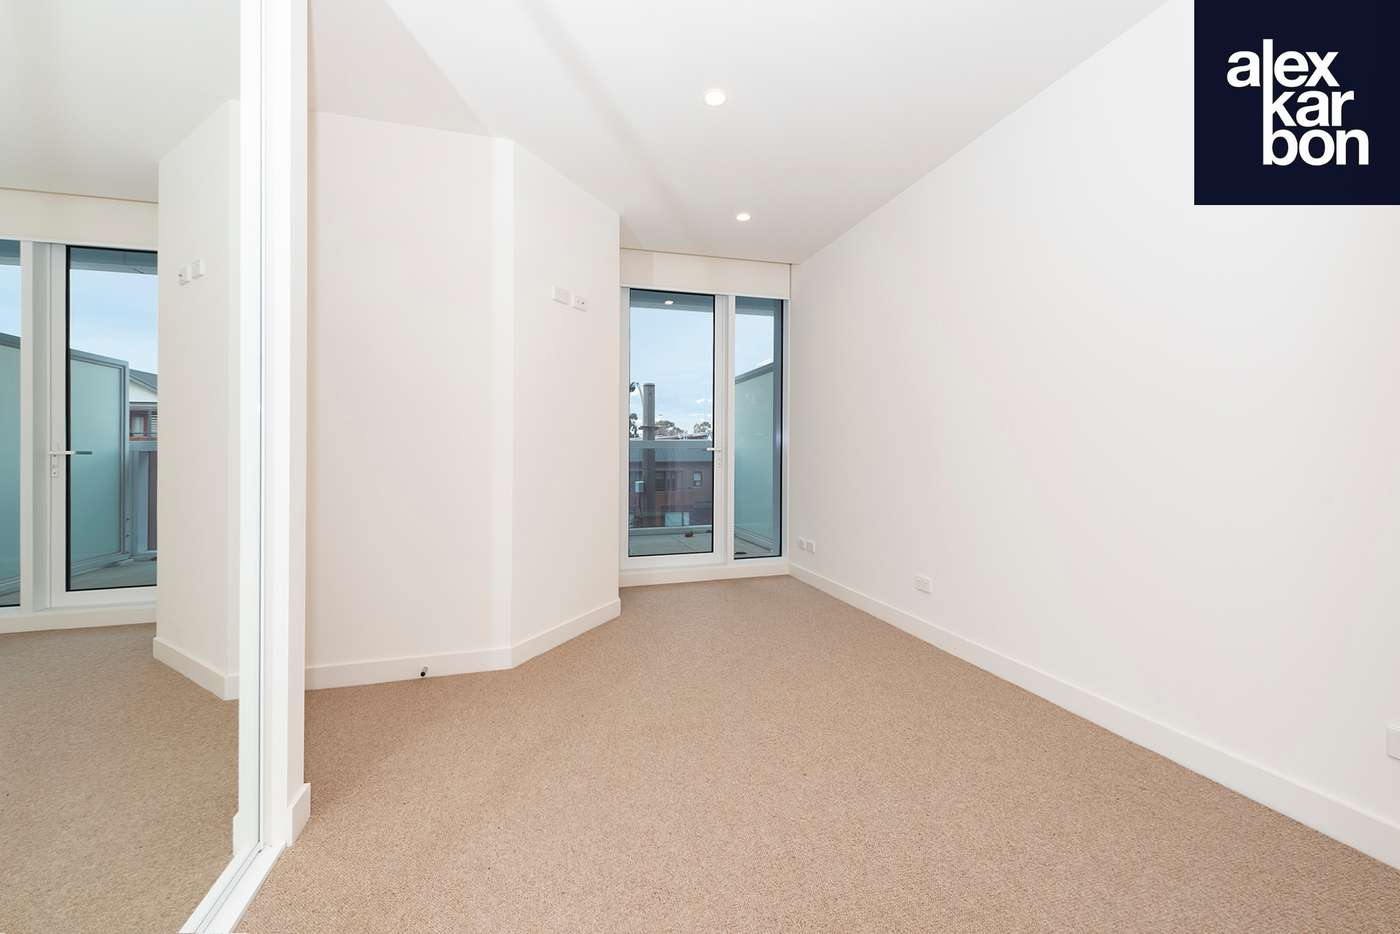 Fifth view of Homely apartment listing, 206/111 Canning Street, North Melbourne VIC 3051